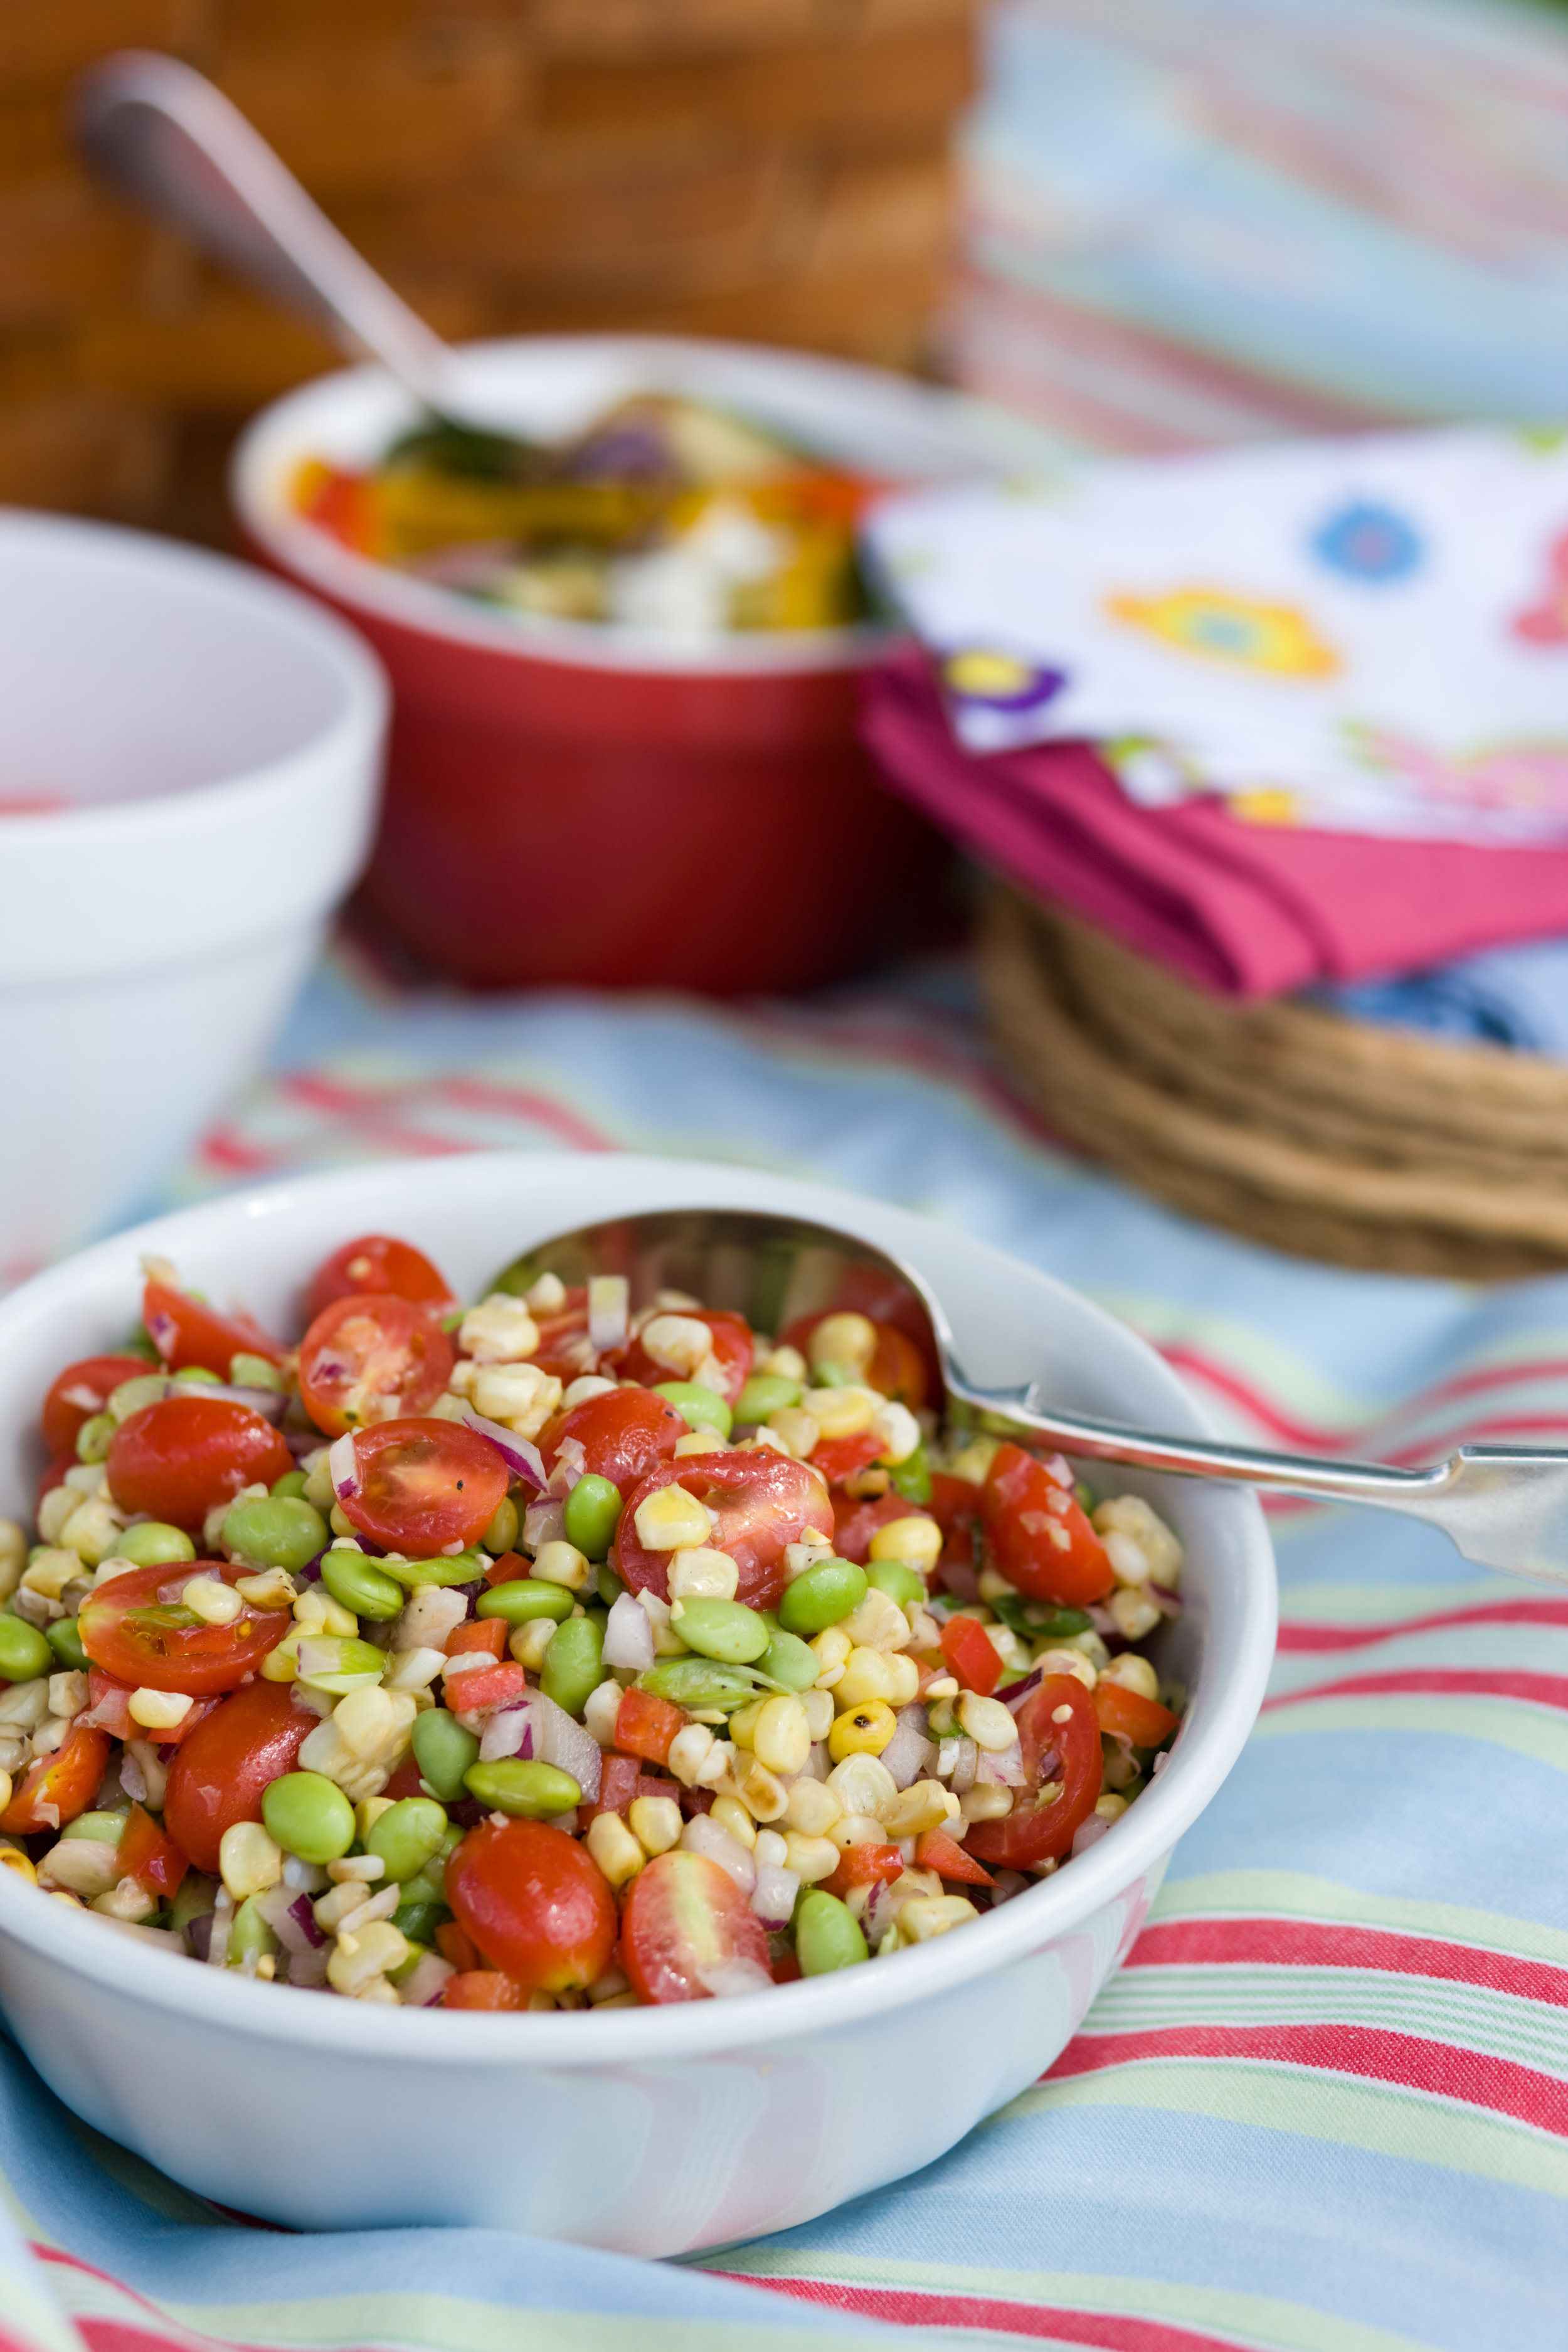 Succotash made with edamame, corn, lime, red onion, tomato, bell pepper and green onion.